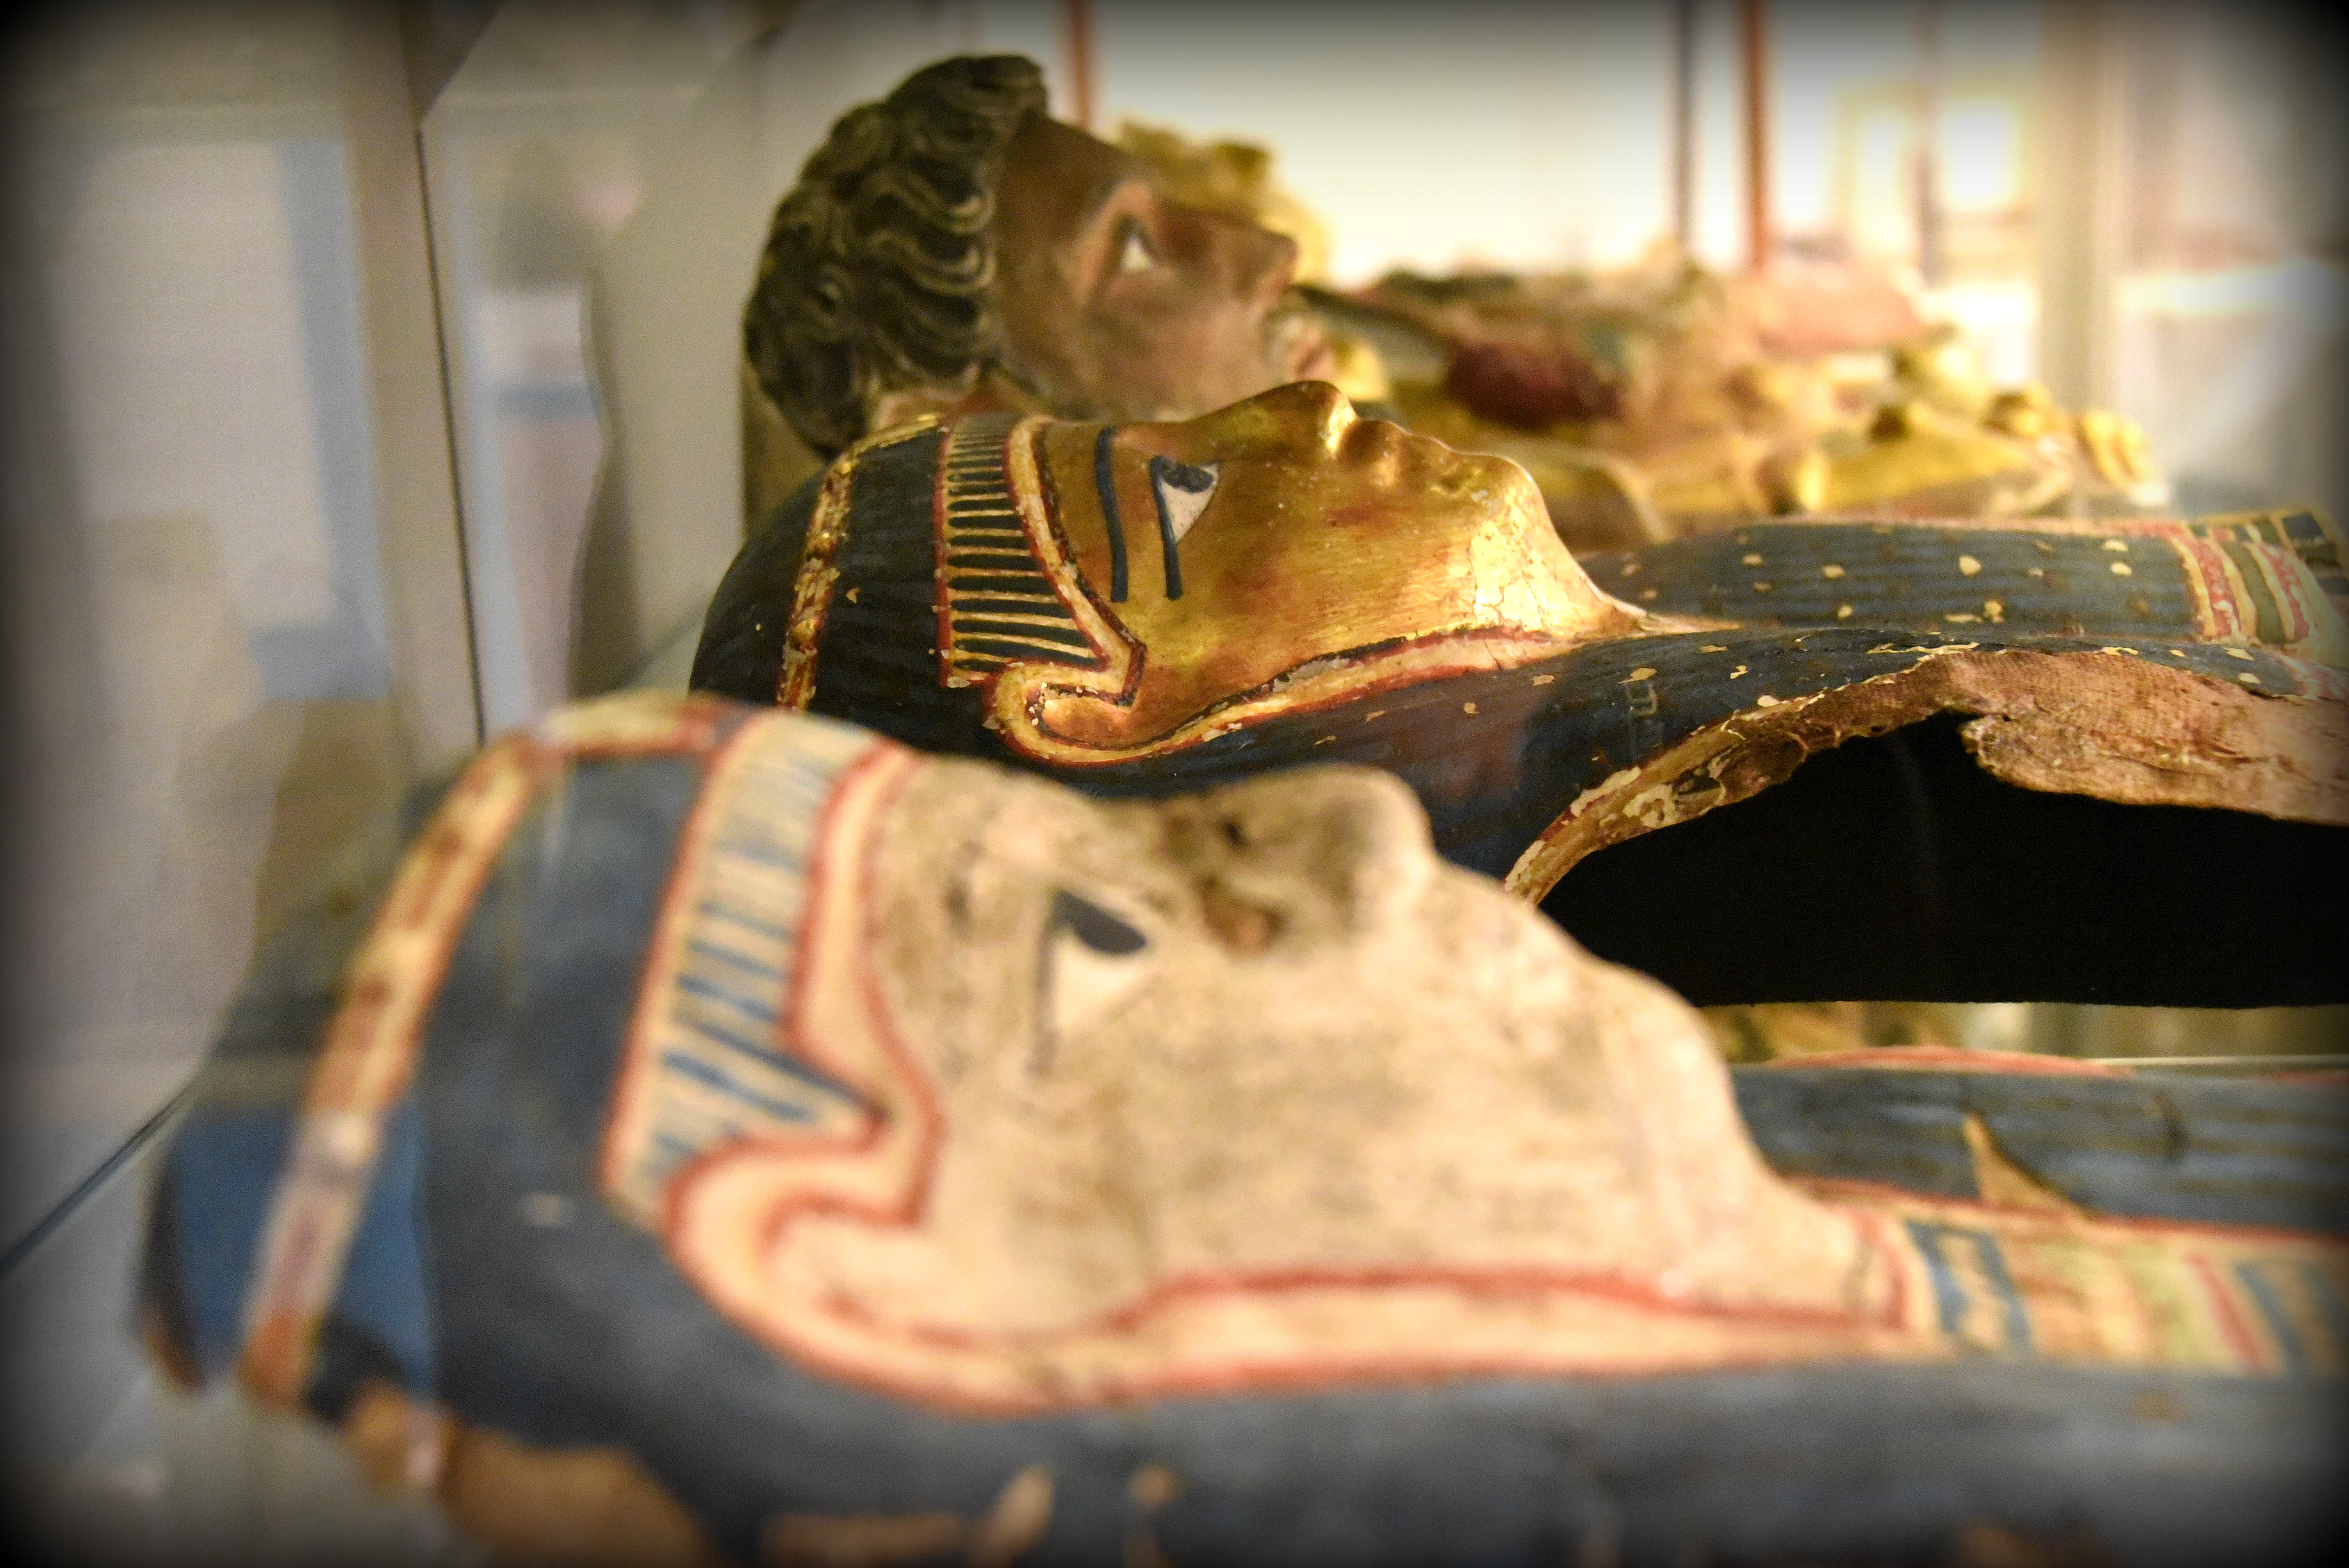 Cartonnage mummy masks. Wealthier ancient Egyptians were keen to prepare for the afterlife. A mummy case was important part for the funerary equipment. After the body was embalmed and wrapped, in a linen bandage, the mummy was placed in case of coffin. Egyptians of a high social status often had lavish and colorful cases.  With thanks to the Petrie Museum of Egyptian Archaeology. Photo © Osama S. M. Amin.